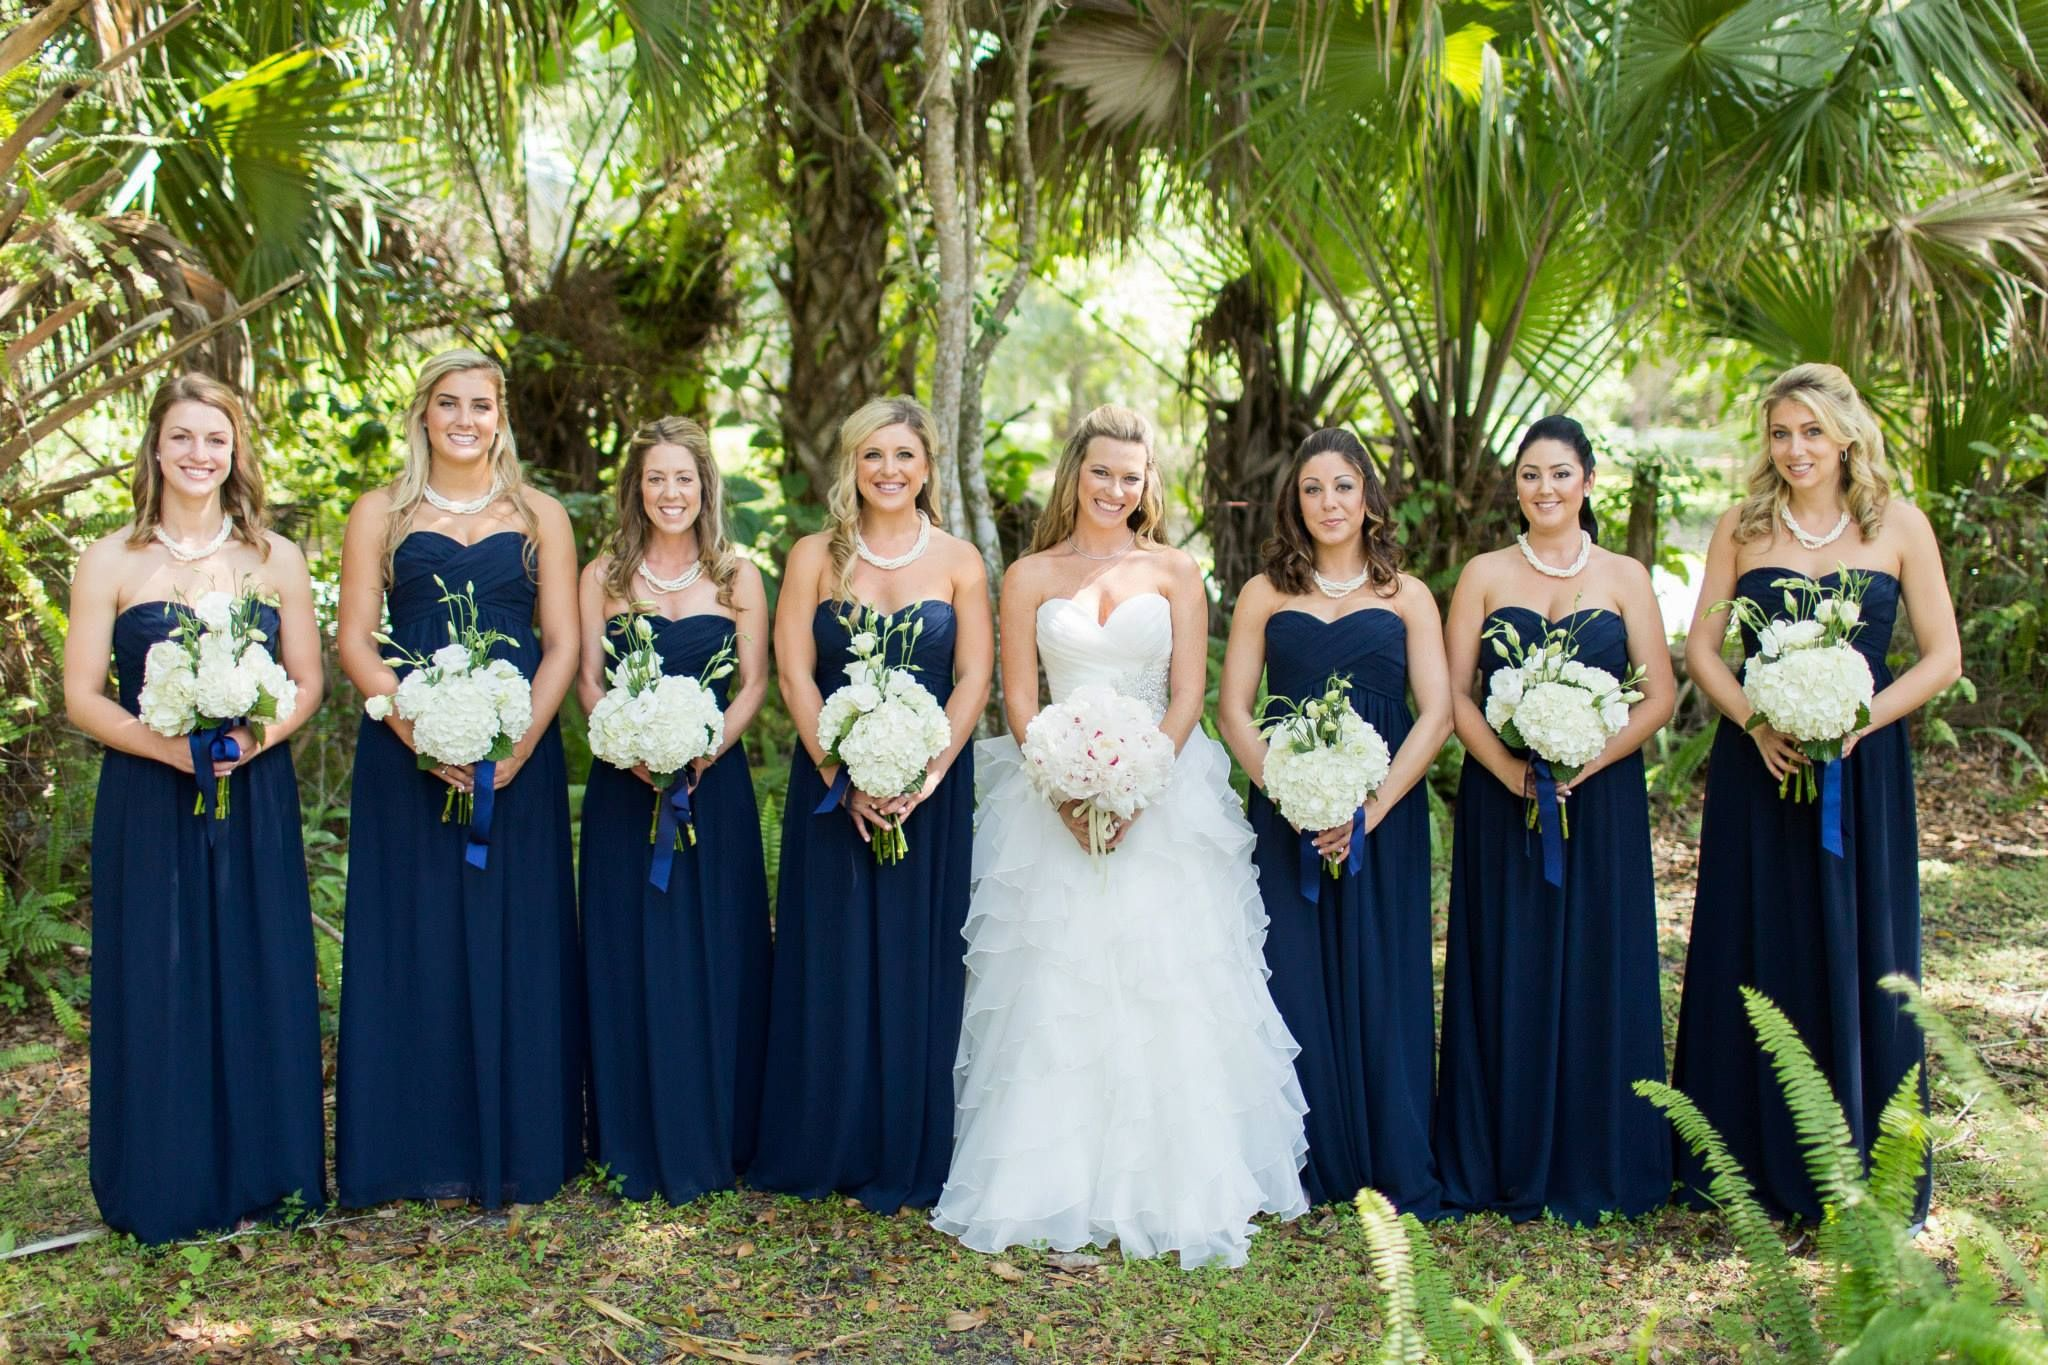 Navy bridesmaid dresses desireedawnevents photo by thompson navy bridesmaid dresses desireedawnevents photo by thompson photography group ombrellifo Images